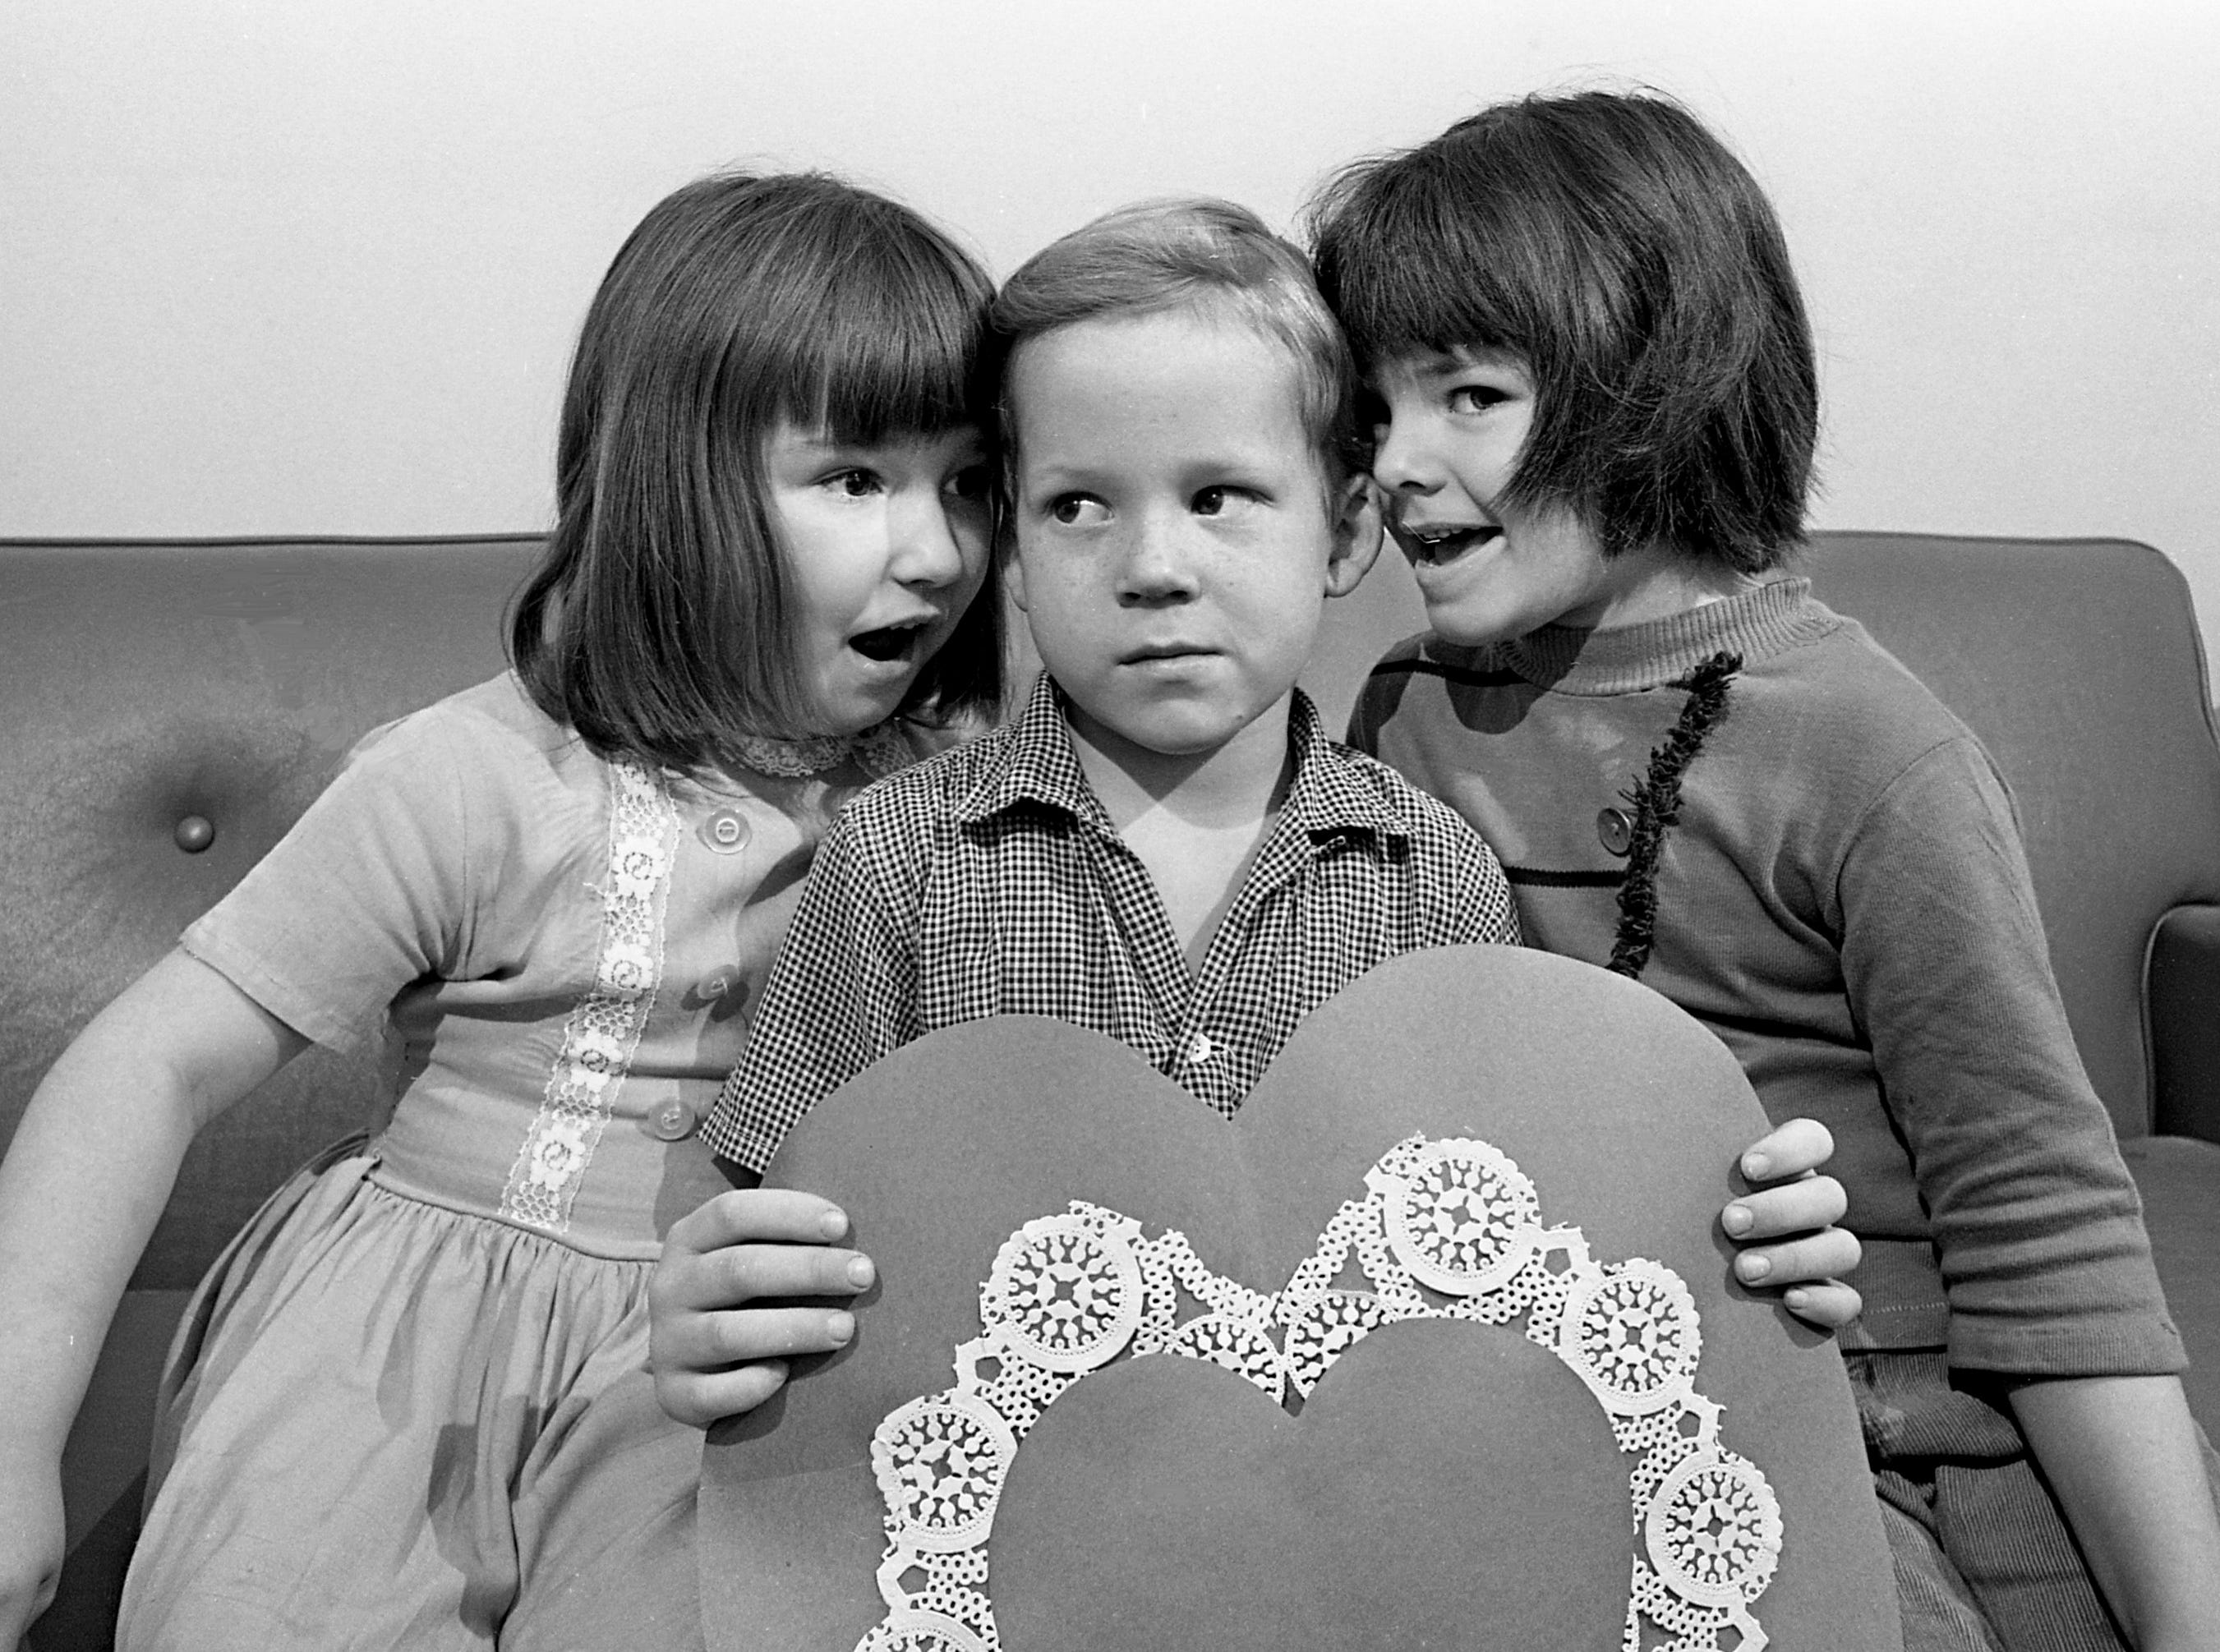 Who'll be his Valentine? The moment of truth nears for Harvey Hammock, 5, as two young ladies woo him with whispered sweet nothings Feb. 10, 1967. They are Nancy Fields and Cynthia Woodard. The youngsters are from McNeilly Day Home, one of five United Givers Fund day care agencies.